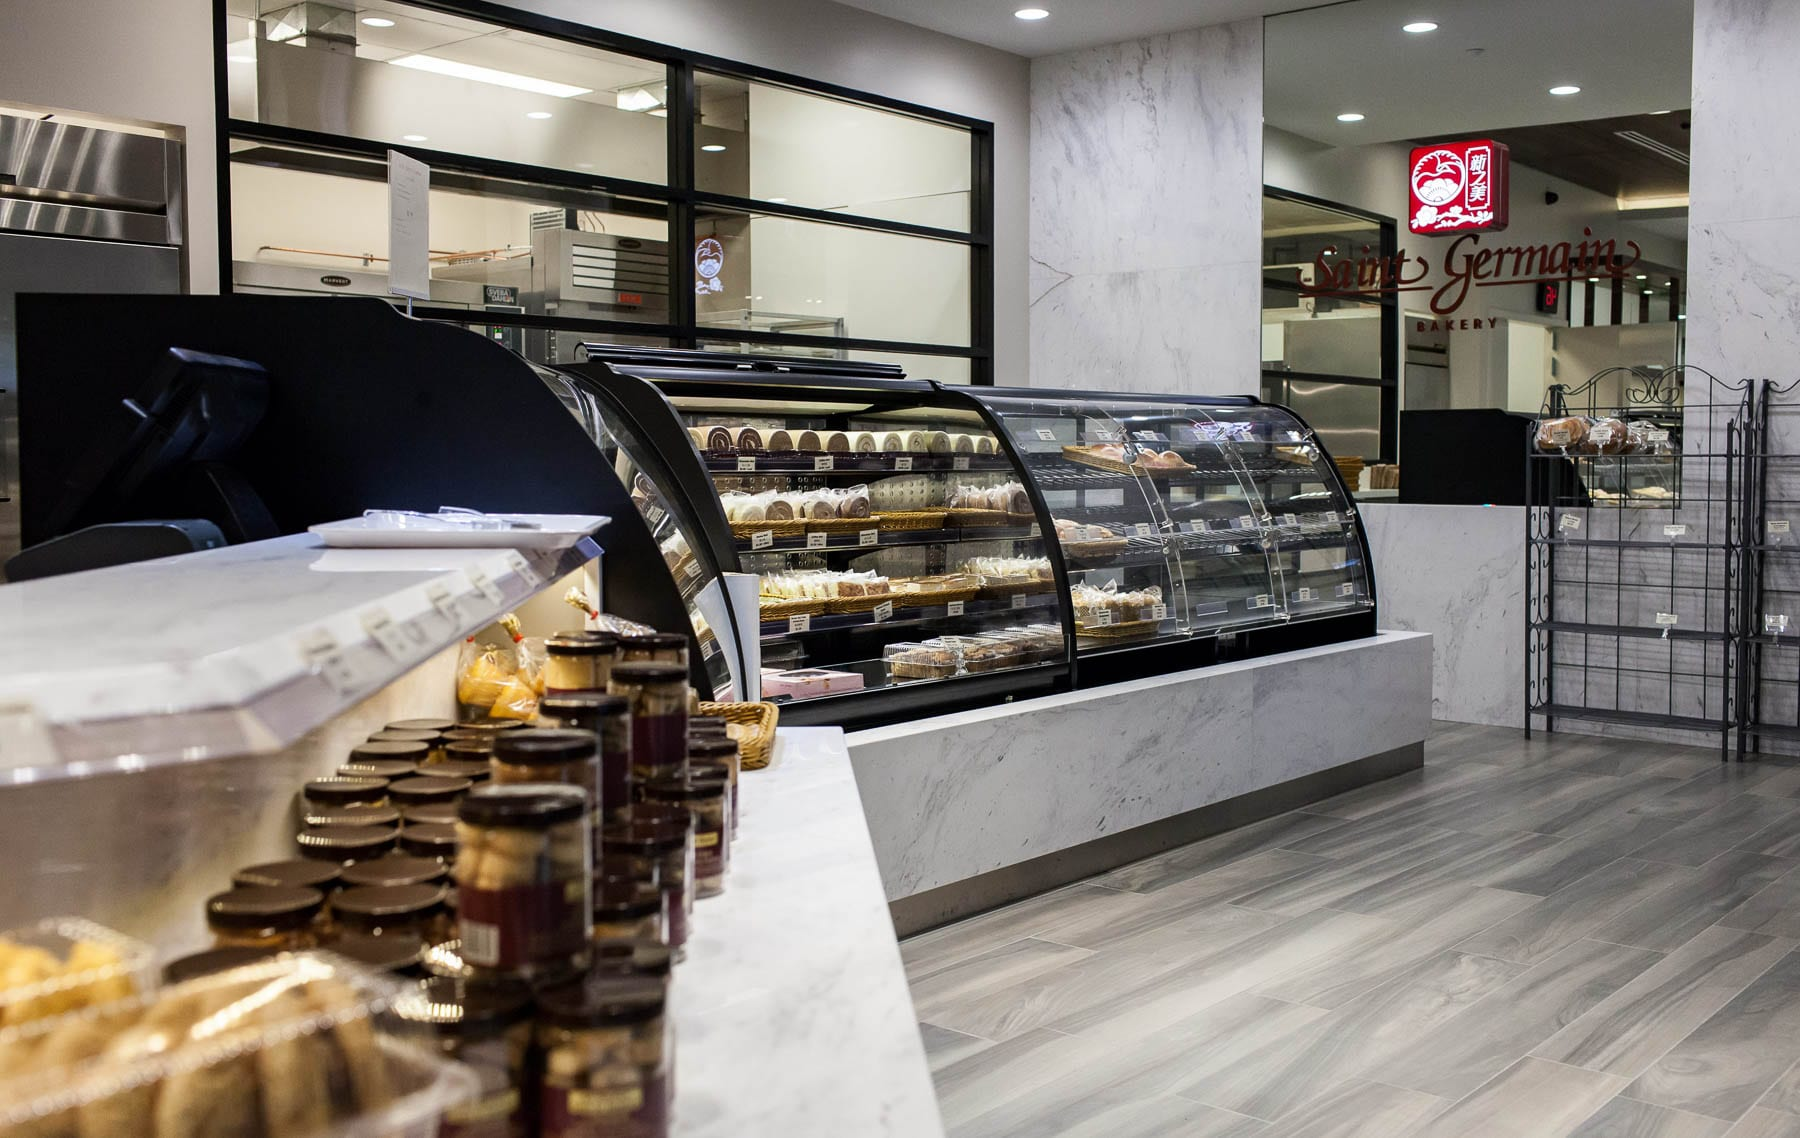 Renovation of Saint Germain Bakery - new millwork for the point of sale, display units and storage